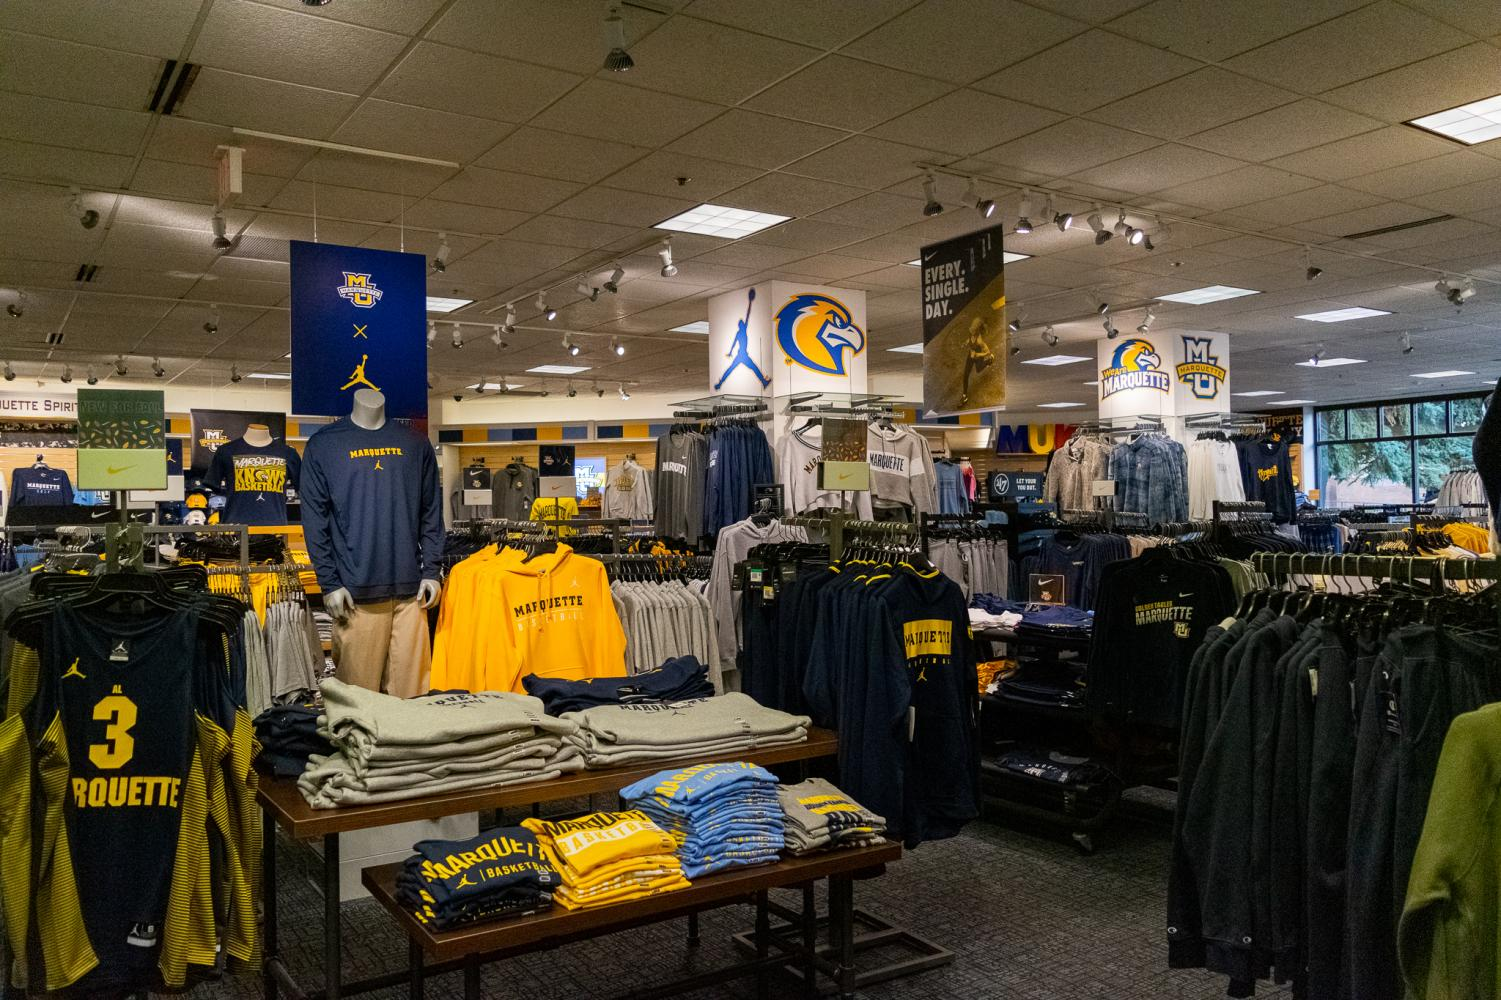 One of the employees, Craig Zientek, hired works for the Marquette Spirit Shop.